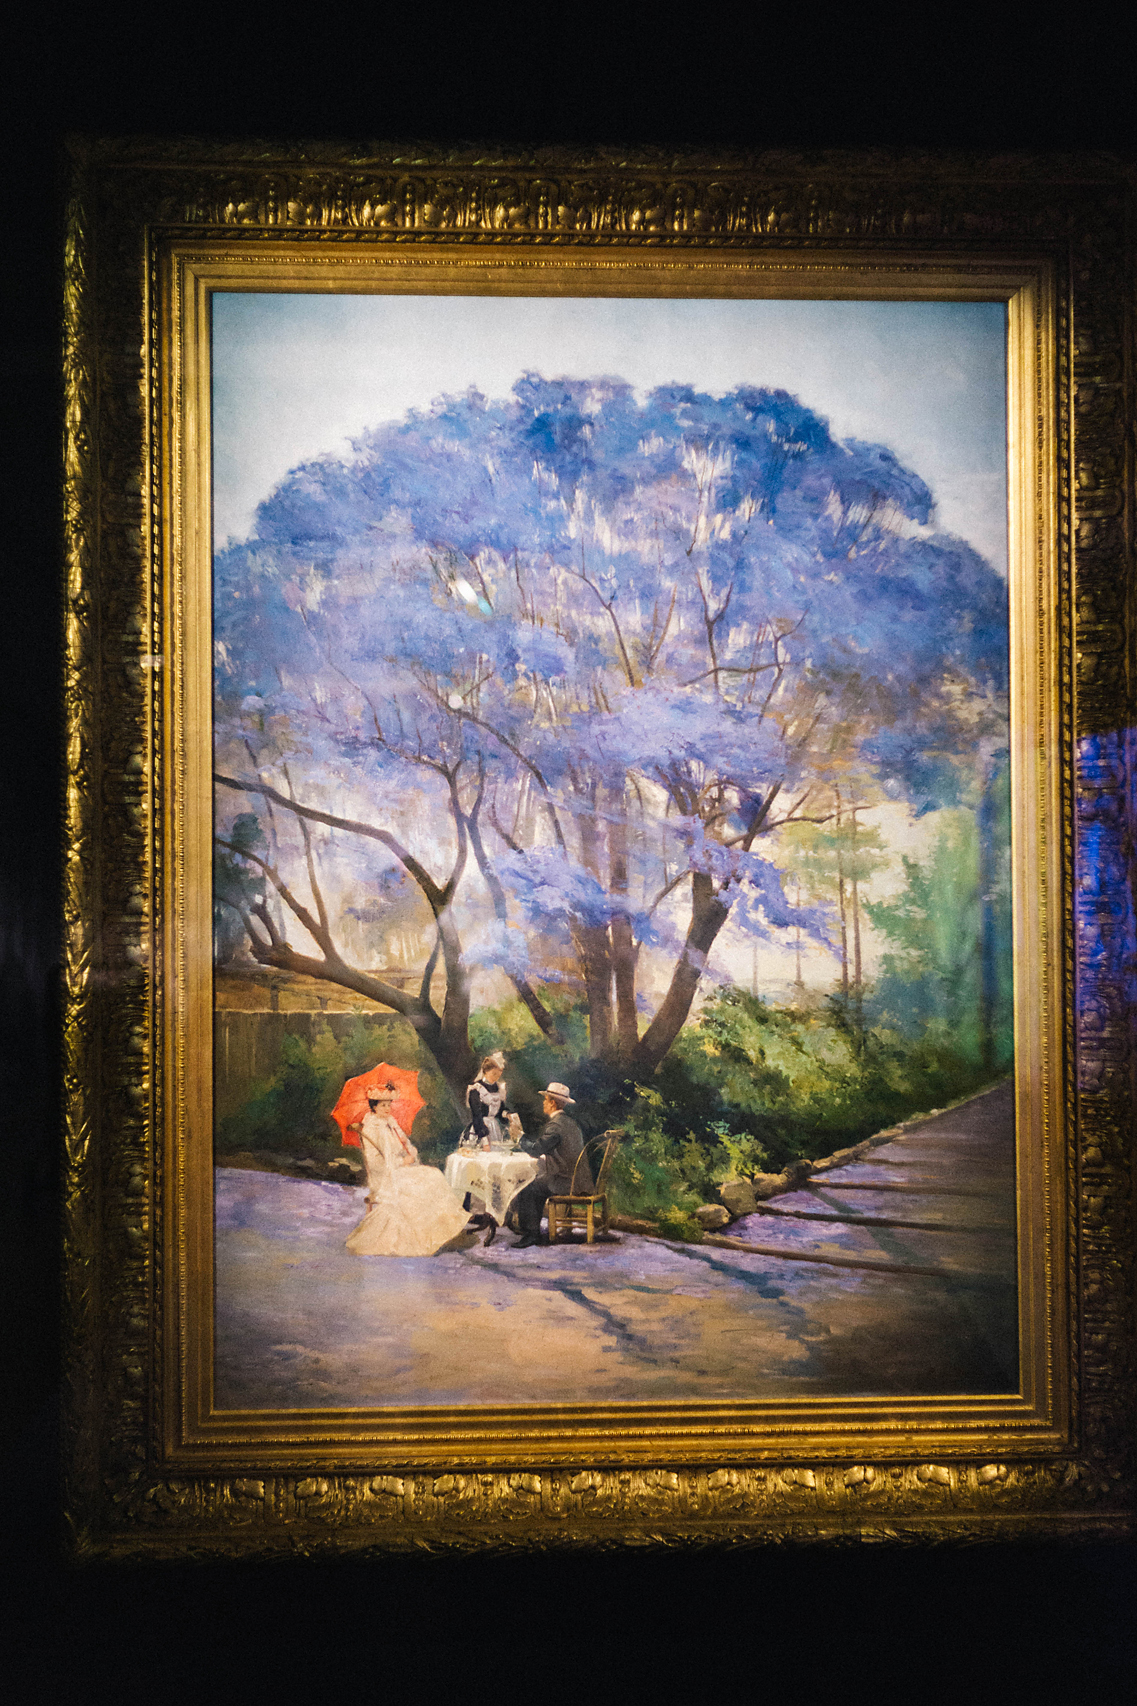 "Queensland Art Gallery; "" Under the Jacaranda "" by R Godfrey Rivers. Here is part of the description for this painting: ""Completed 13 years after Godfrey Rivers arrived in Australia, Under the jacaranda 1903 offers a view of early twentieth-century life in Brisbane, with the subject reflecting a popular genteel European tradition of 'taking tea' in an attractive outdoor setting. The work depicts the artist and his wife, Selina, under the shade of a jacaranda tree in full bloom in the Brisbane City Botanic Gardens. Rivers captures the majestic form of the tree, emphasising its distinctive colour with the contrasting green vegetation and the sparkling accent of the red umbrella"". (Poppy & Sage Photography)"